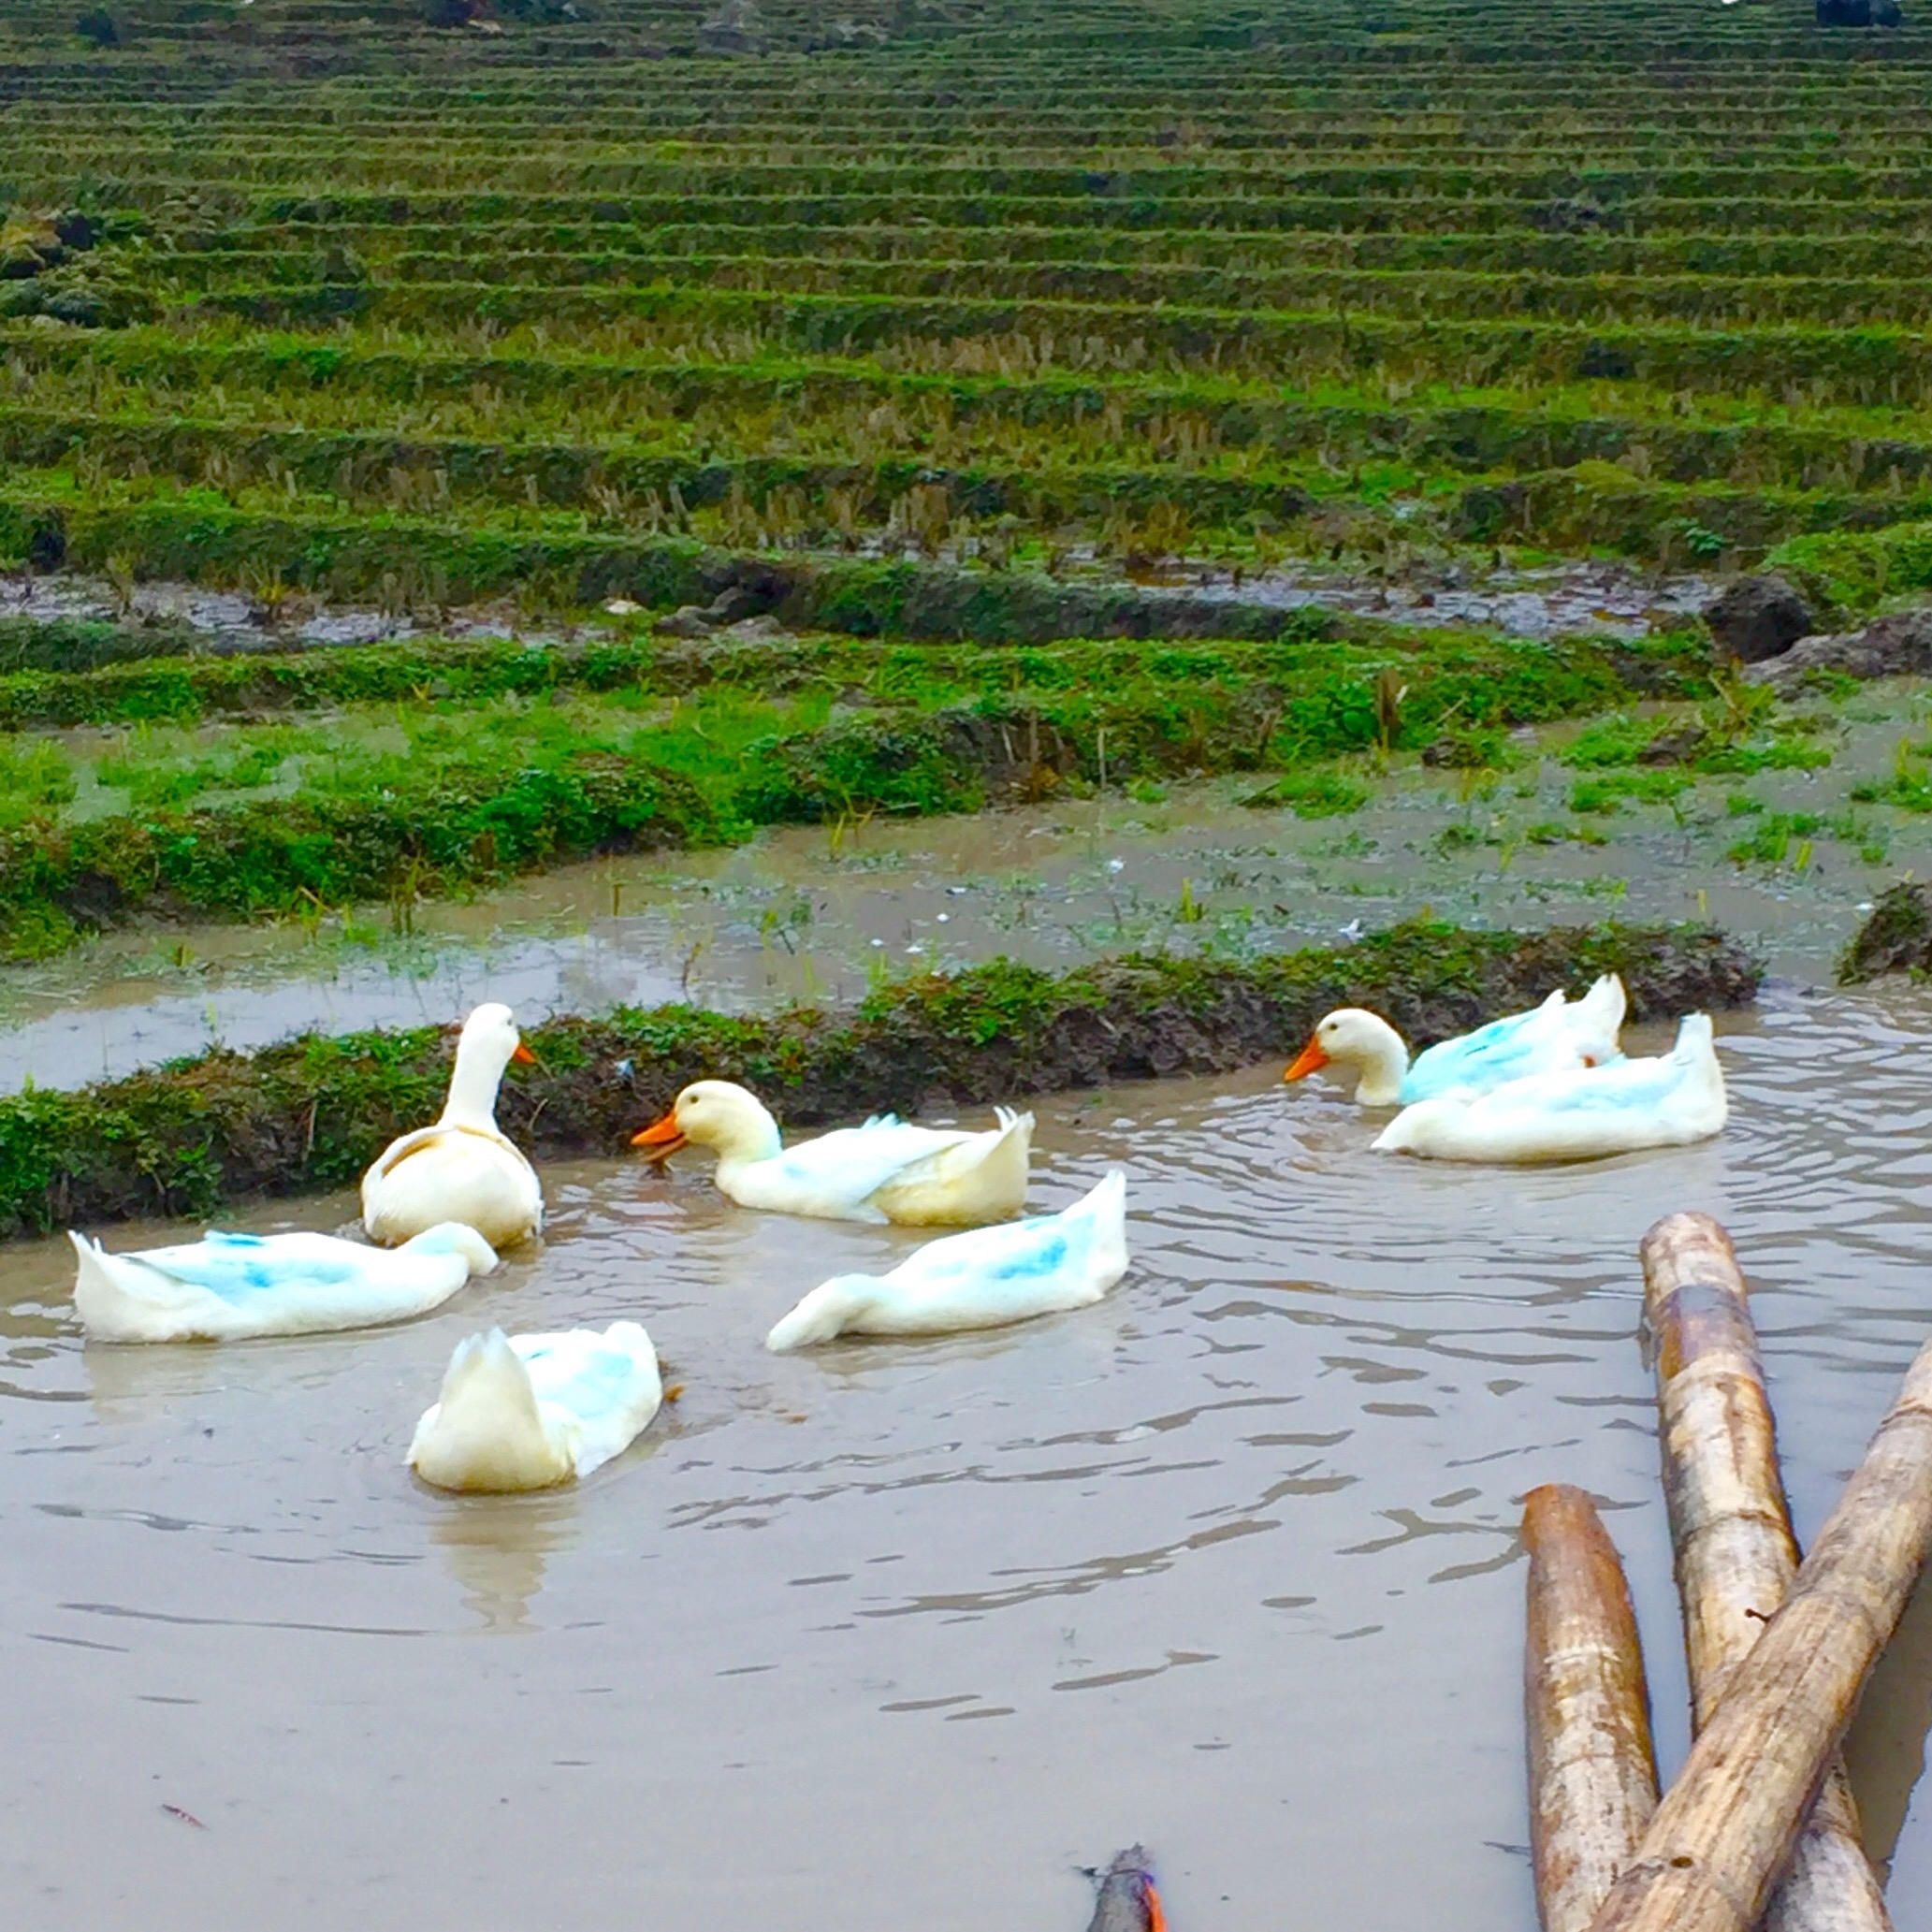 These ducks are sporting blue feathers, caused by the indigo dye that the Hmong Tribe uses to color their clothing and garments. Billy Madison, I found your blue duck.